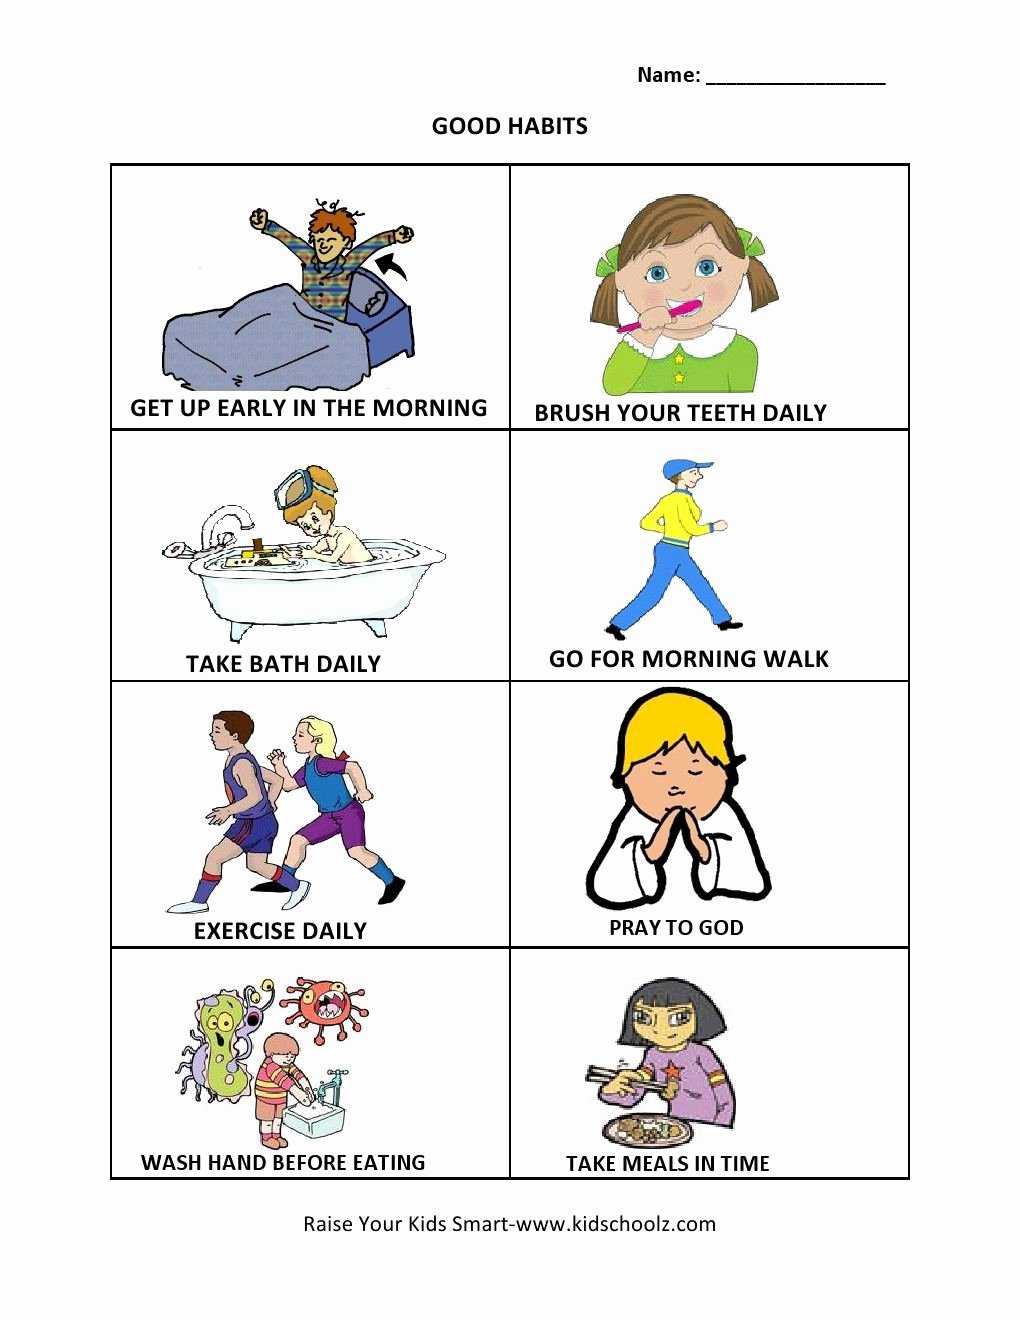 Good Habits Worksheets for Preschoolers Beautiful Grade 1 Good Habits Worksheet Summmer Vacation